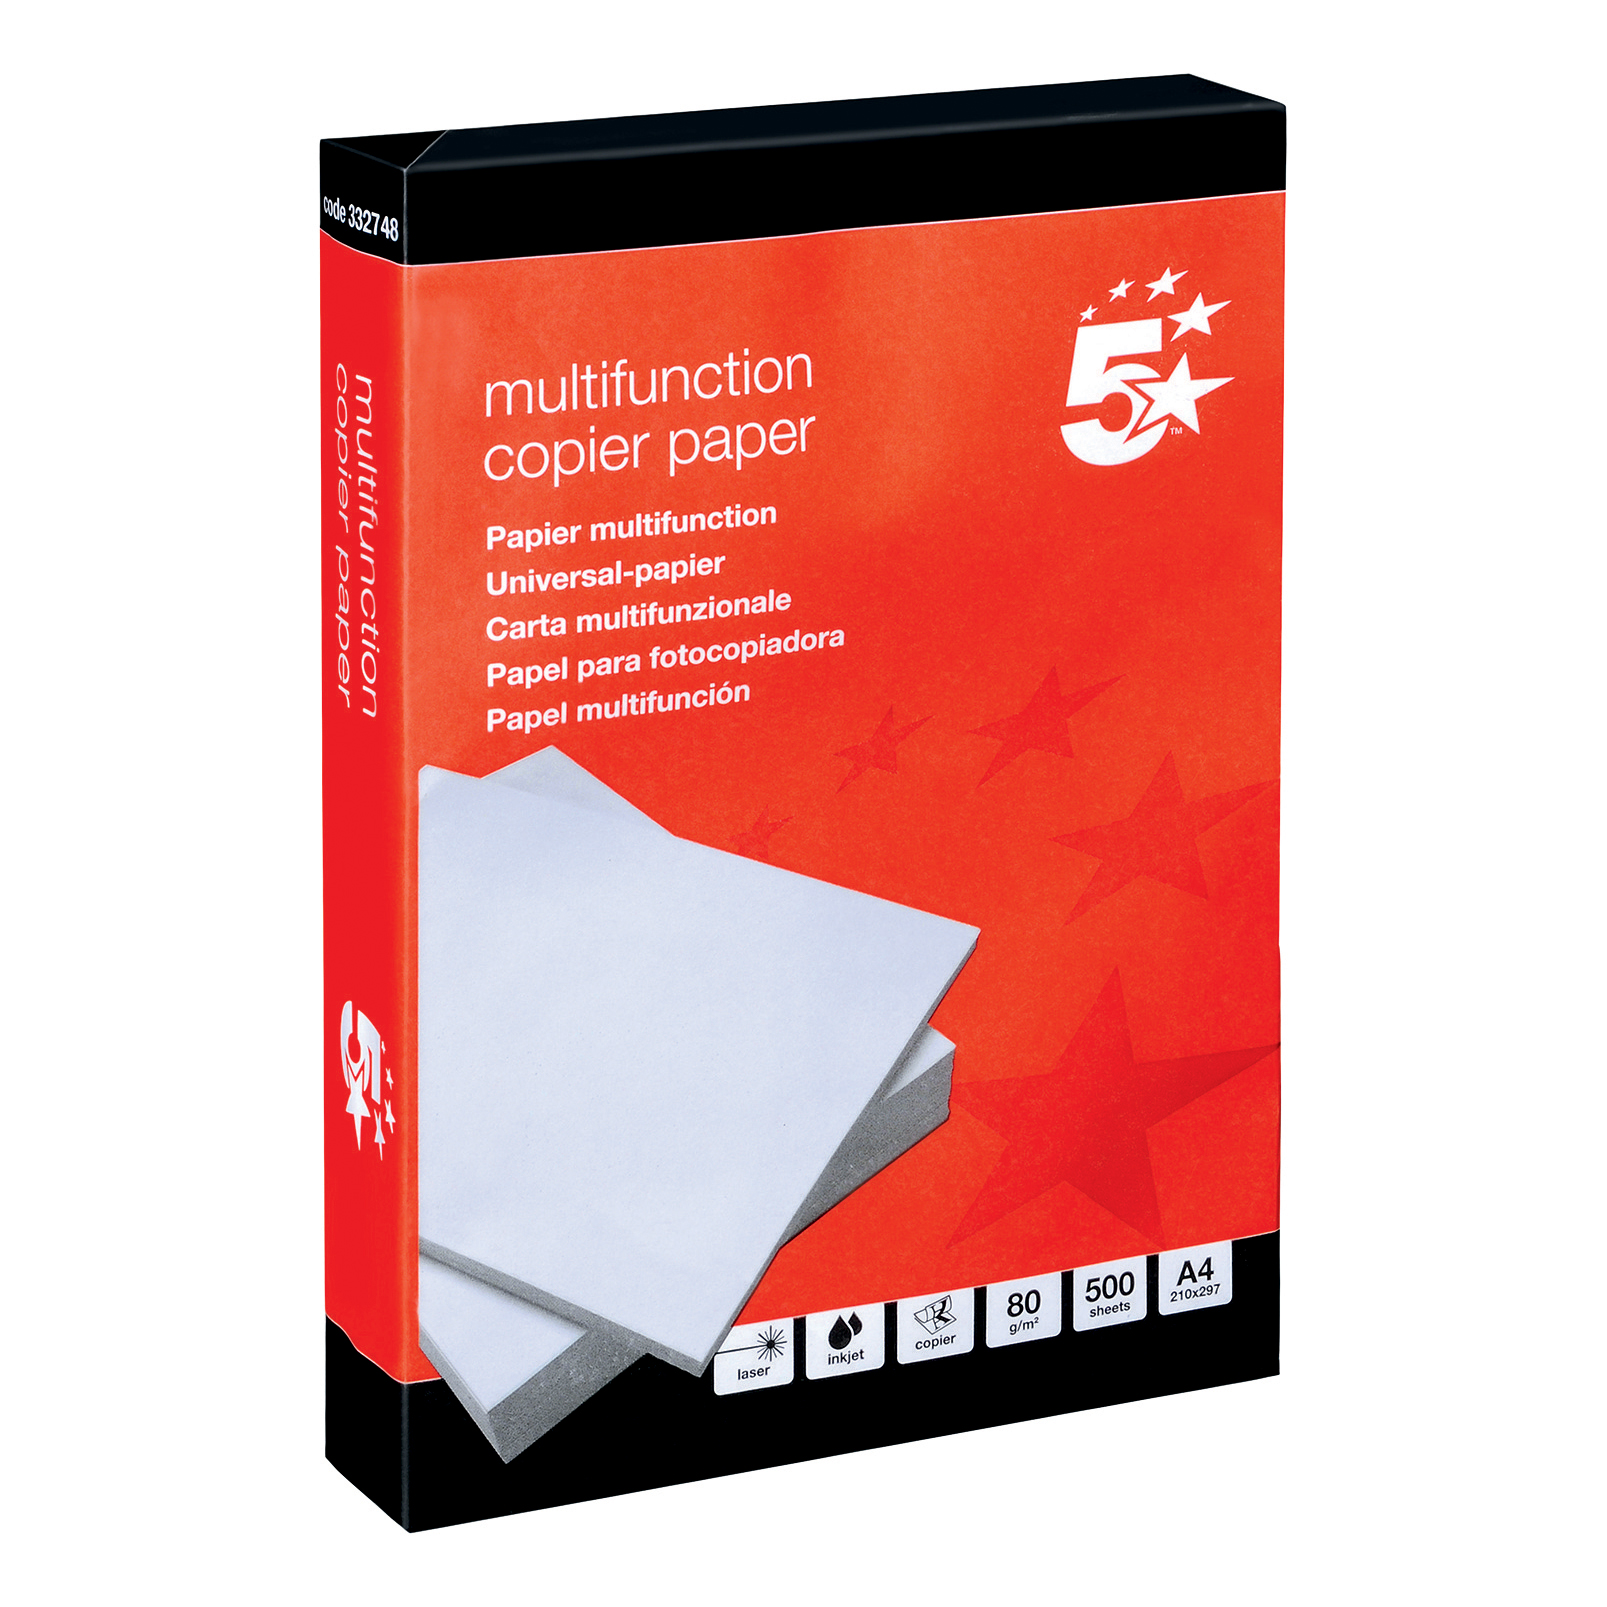 5 Star Office Copier Paper Multifunctional 80gsm 500 Sheets per Ream A4 White 1 Ream